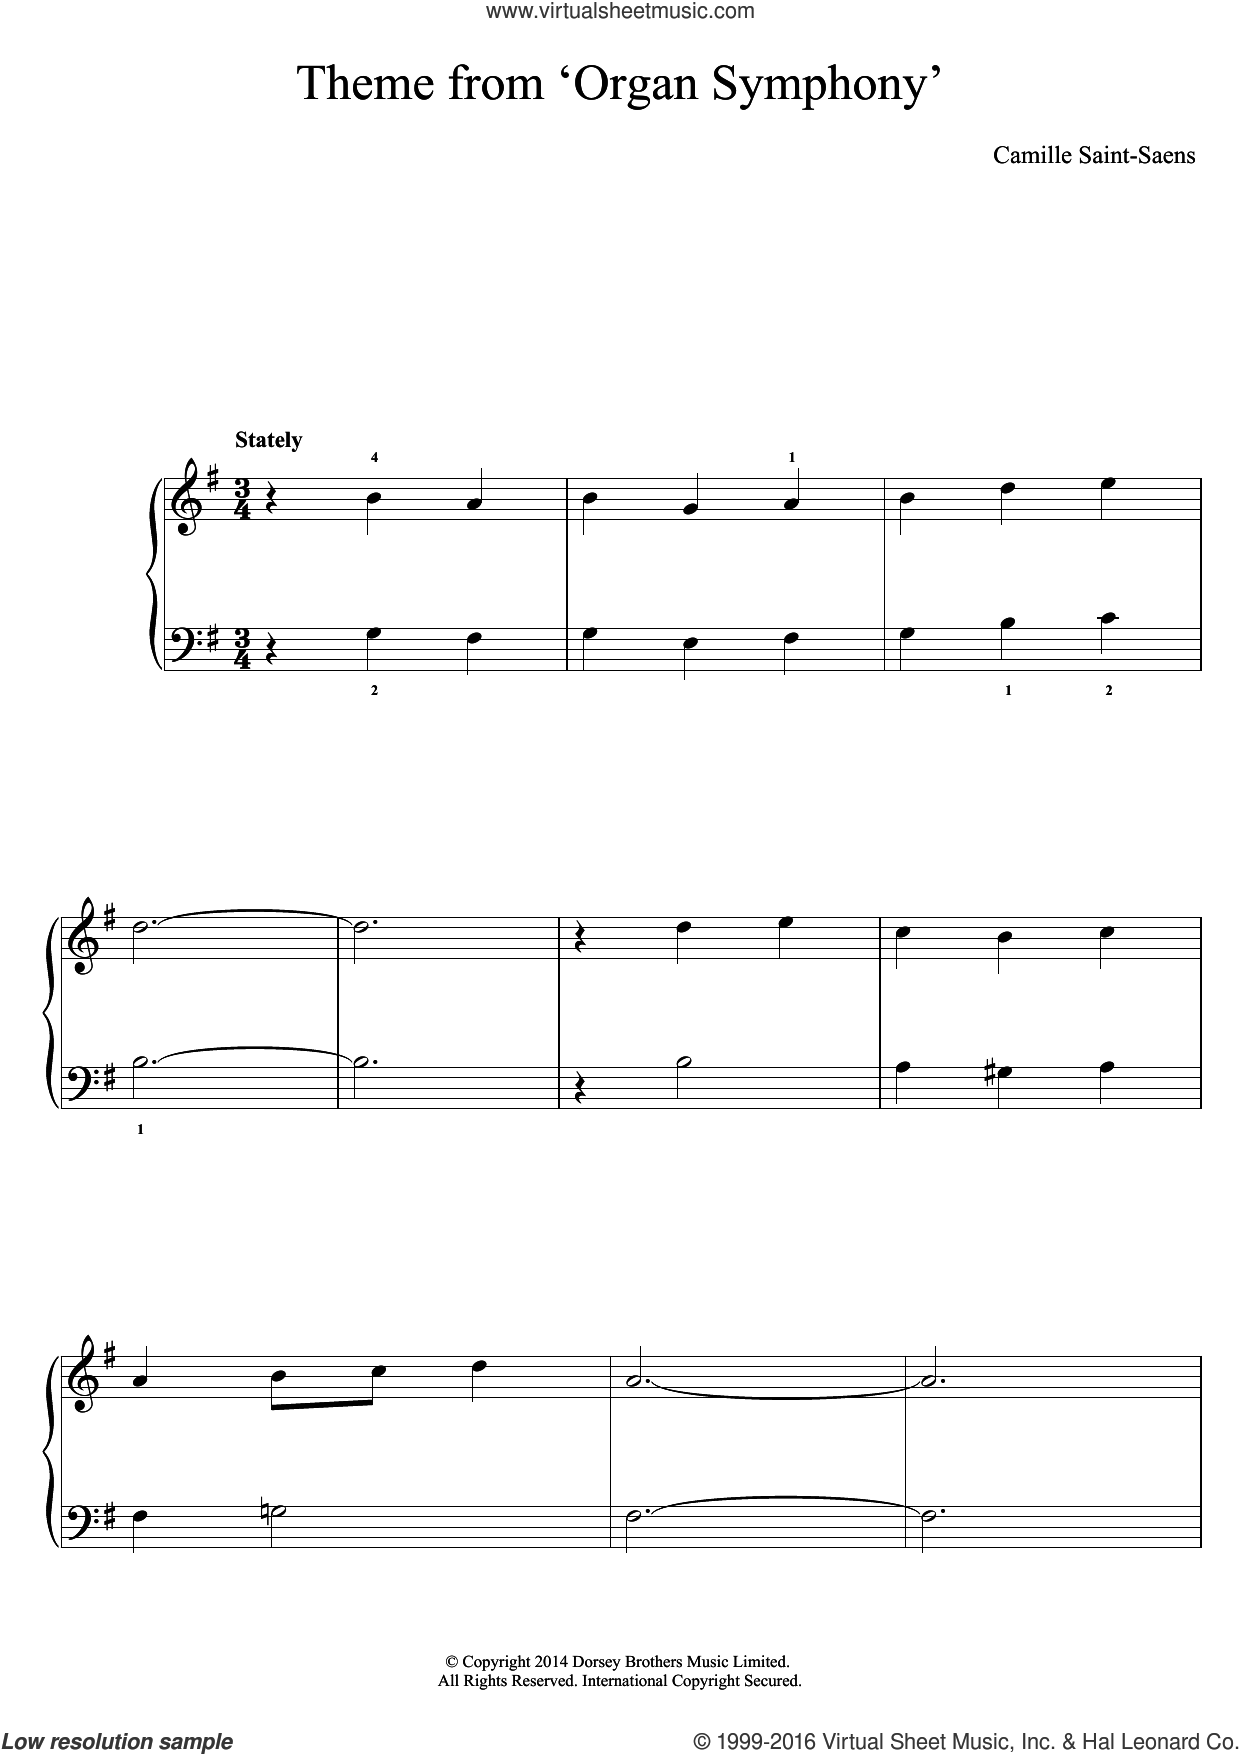 'Organ' Symphony (Theme) sheet music for piano solo by Camille Saint-Saens. Score Image Preview.